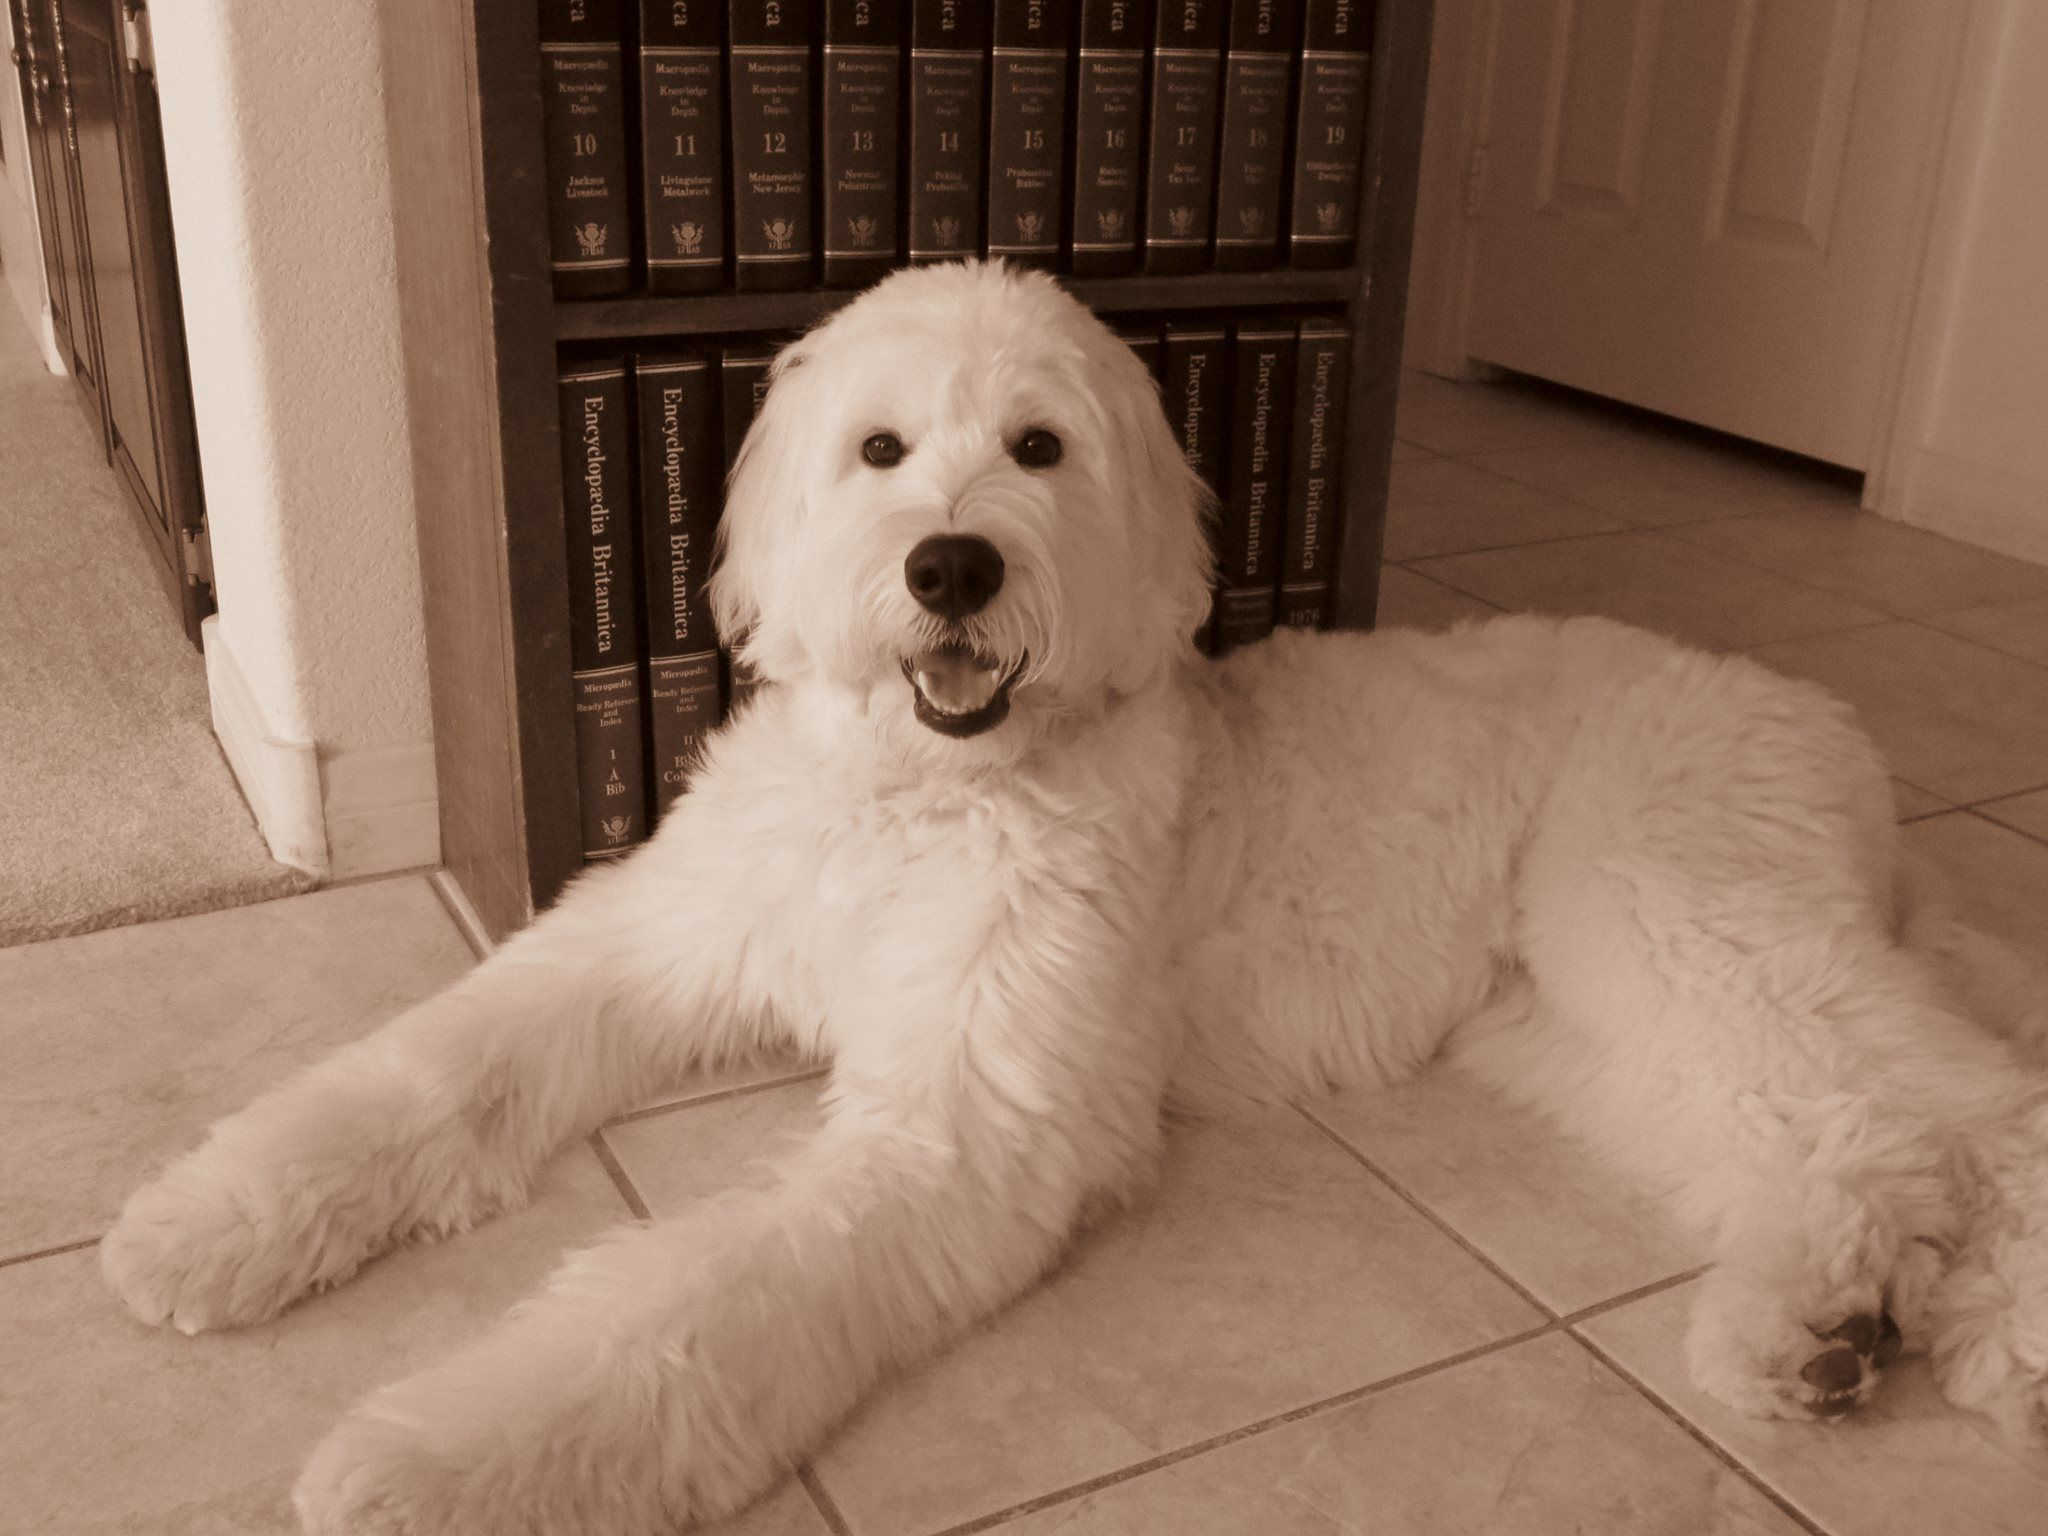 Bartlett English F1 Goldendoodle from Moss Creek